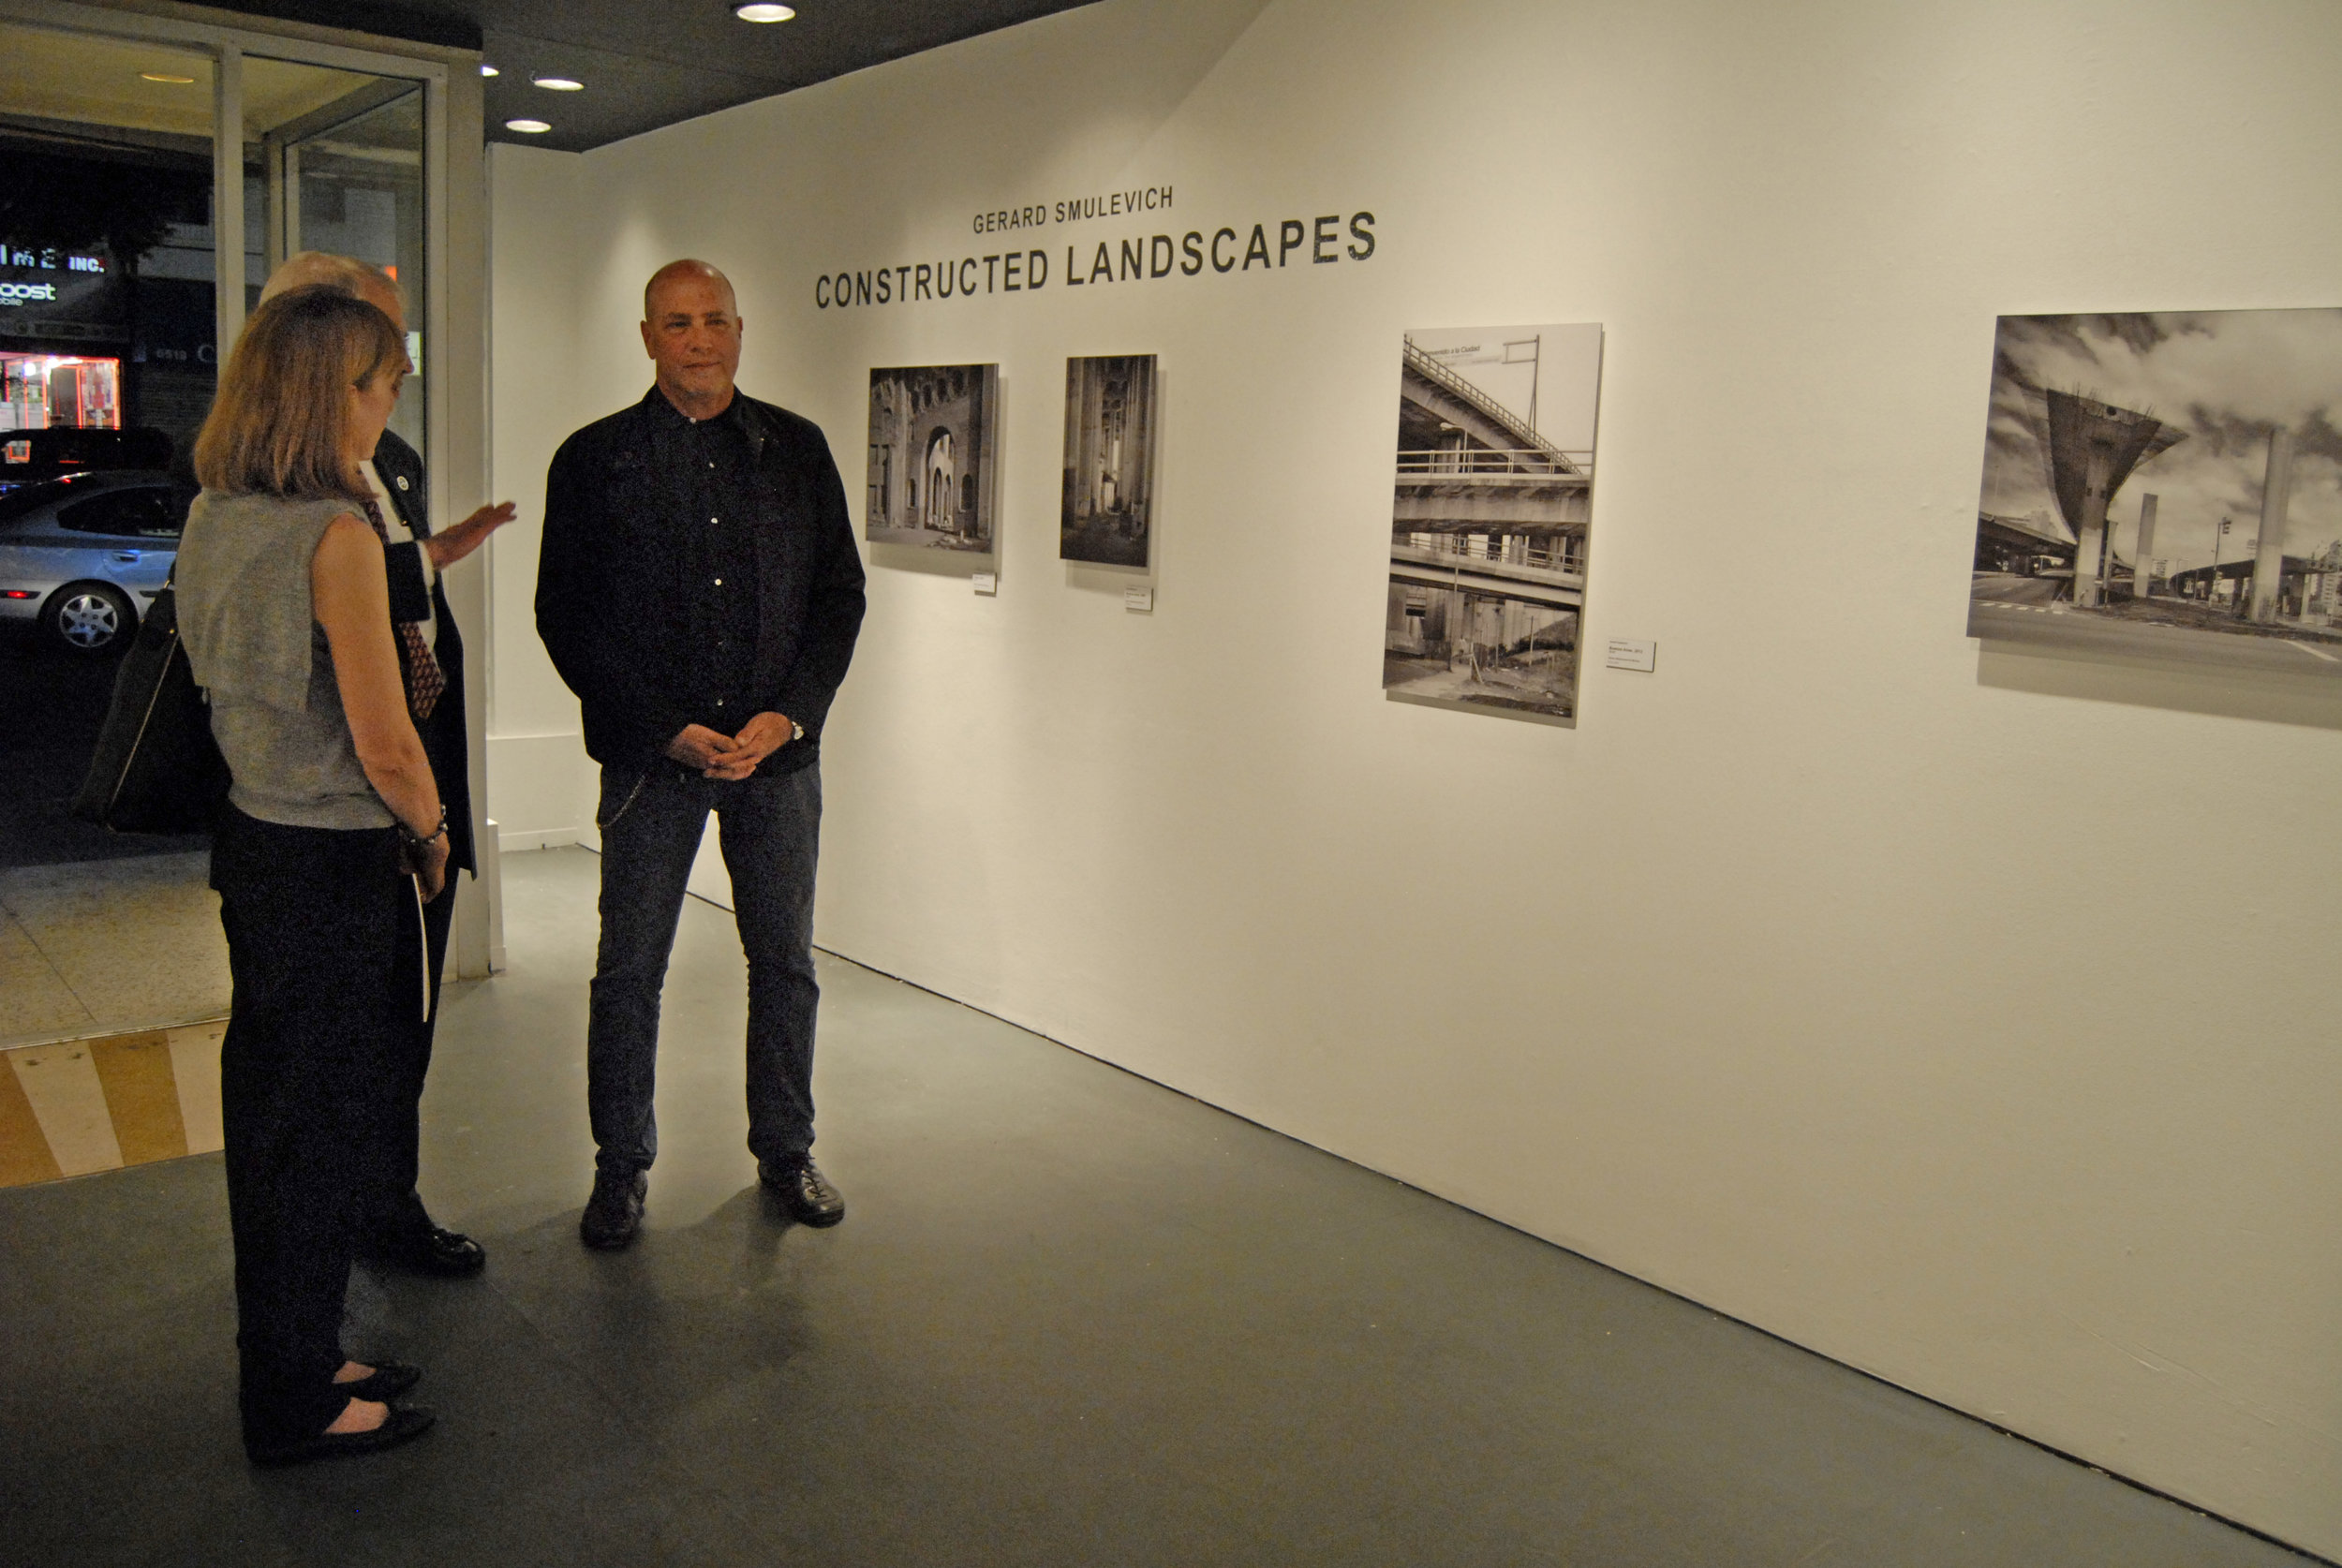 Gerard Smulevich at the opening of  Constructed Landscapes  at the WUHO Gallery in Hollywood, CA.